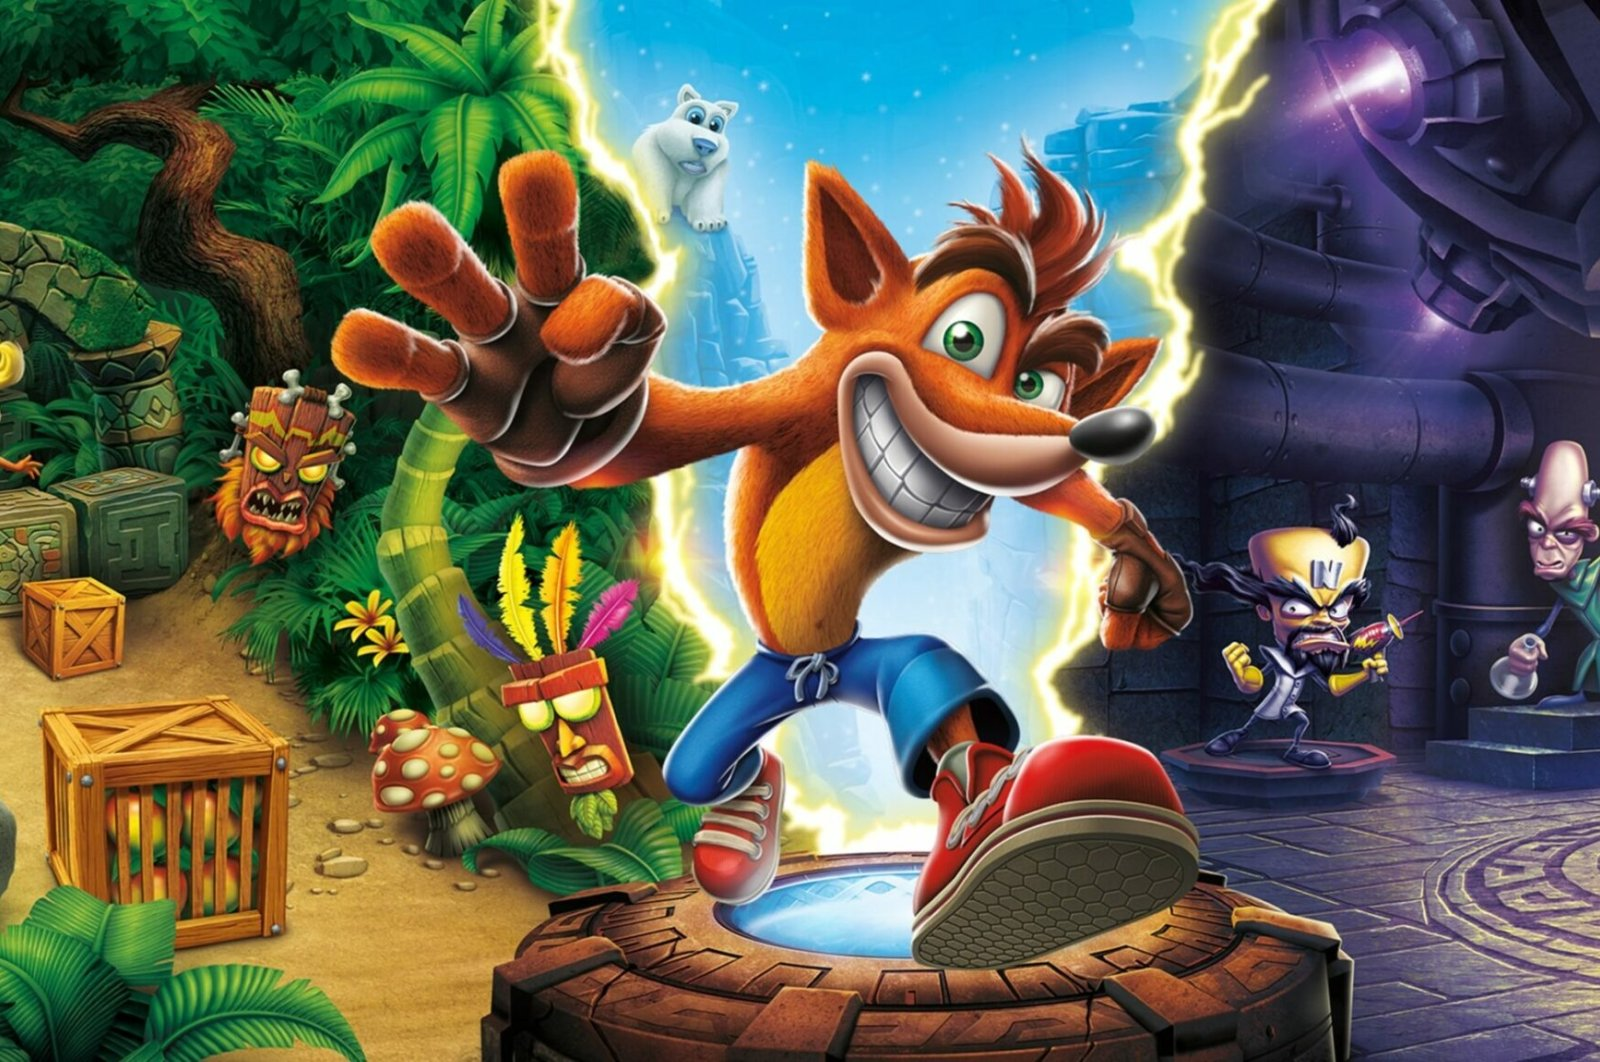 Originally developed by Naughty Dog as an exclusive for Sony's PlayStation, Crash Bandicoot is now available on PCs via Steam. (Credit: Sony)